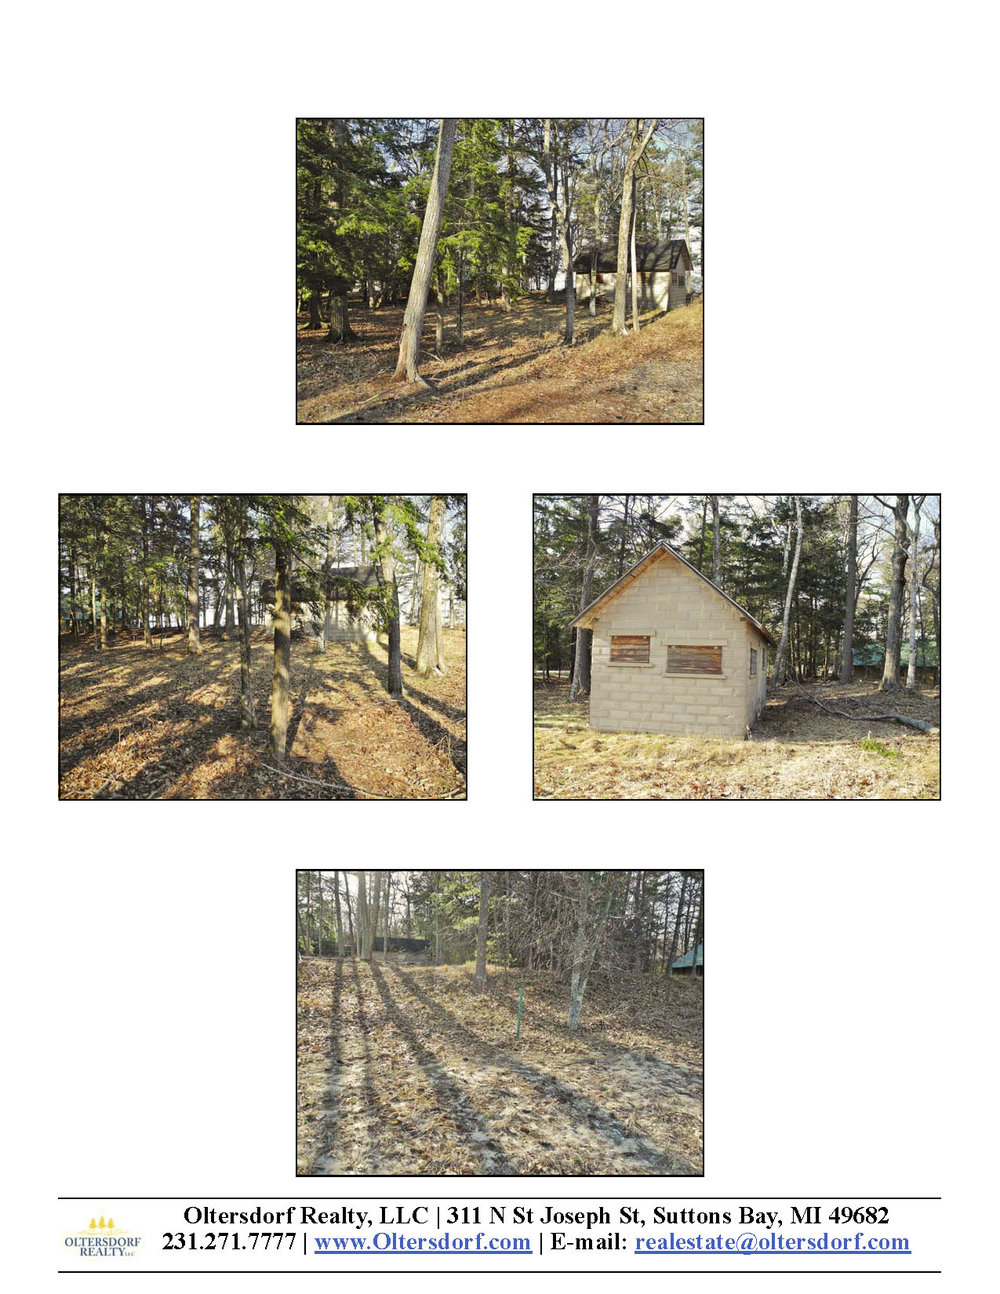 Lot 1 - N Forest Beach Shores, Northport – FOR SALE by Oltersdorf Realty LLC - Marketing Packet (3).jpg